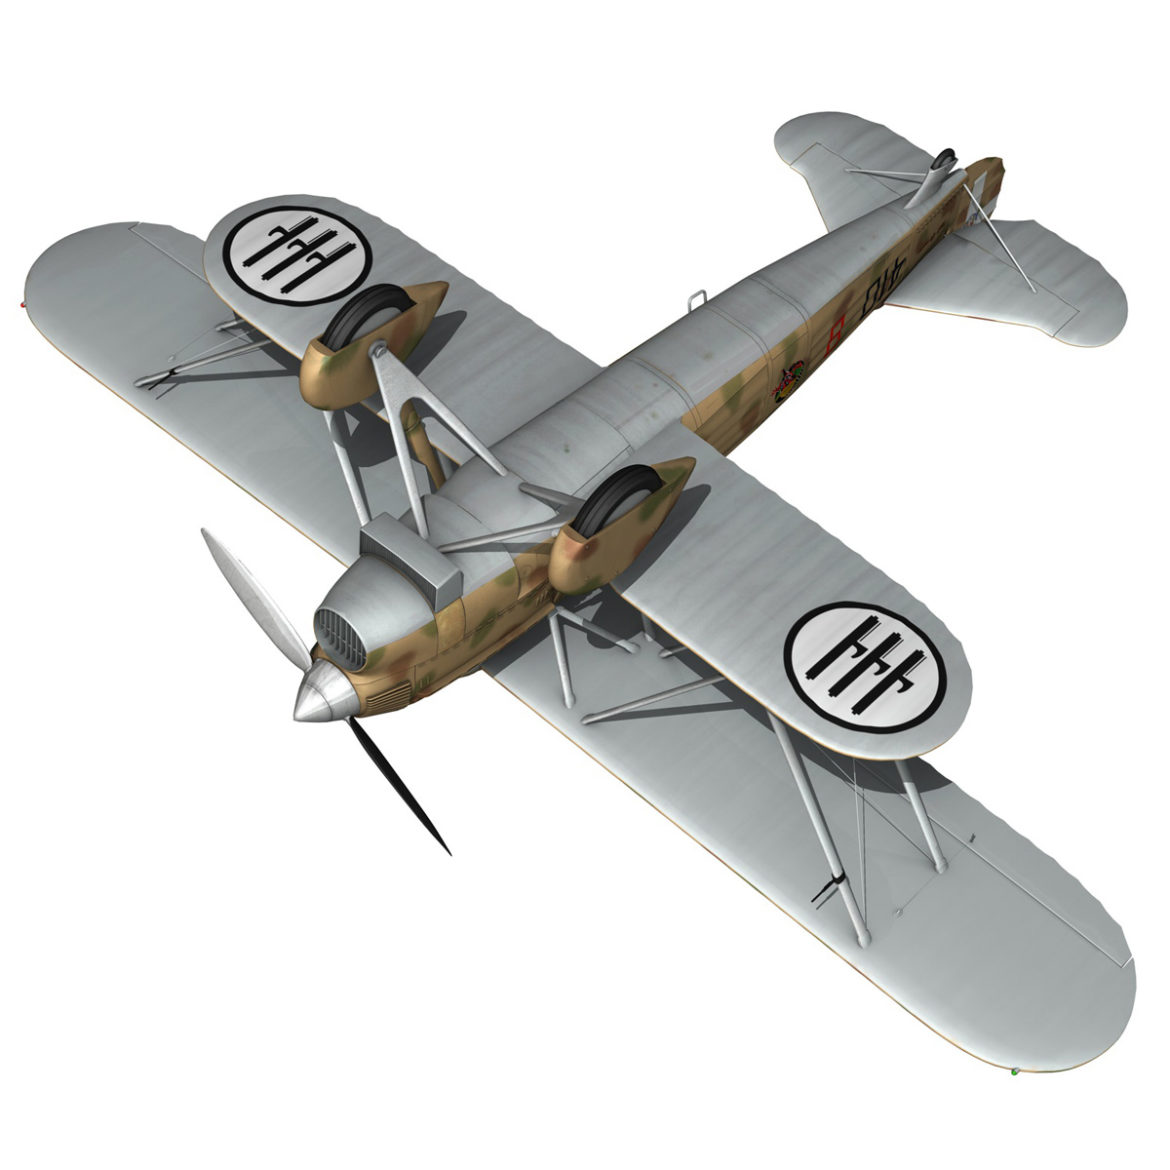 fiat cr.32 – italy airforce – 410 squadriglia 3d model fbx c4d lwo obj 307559